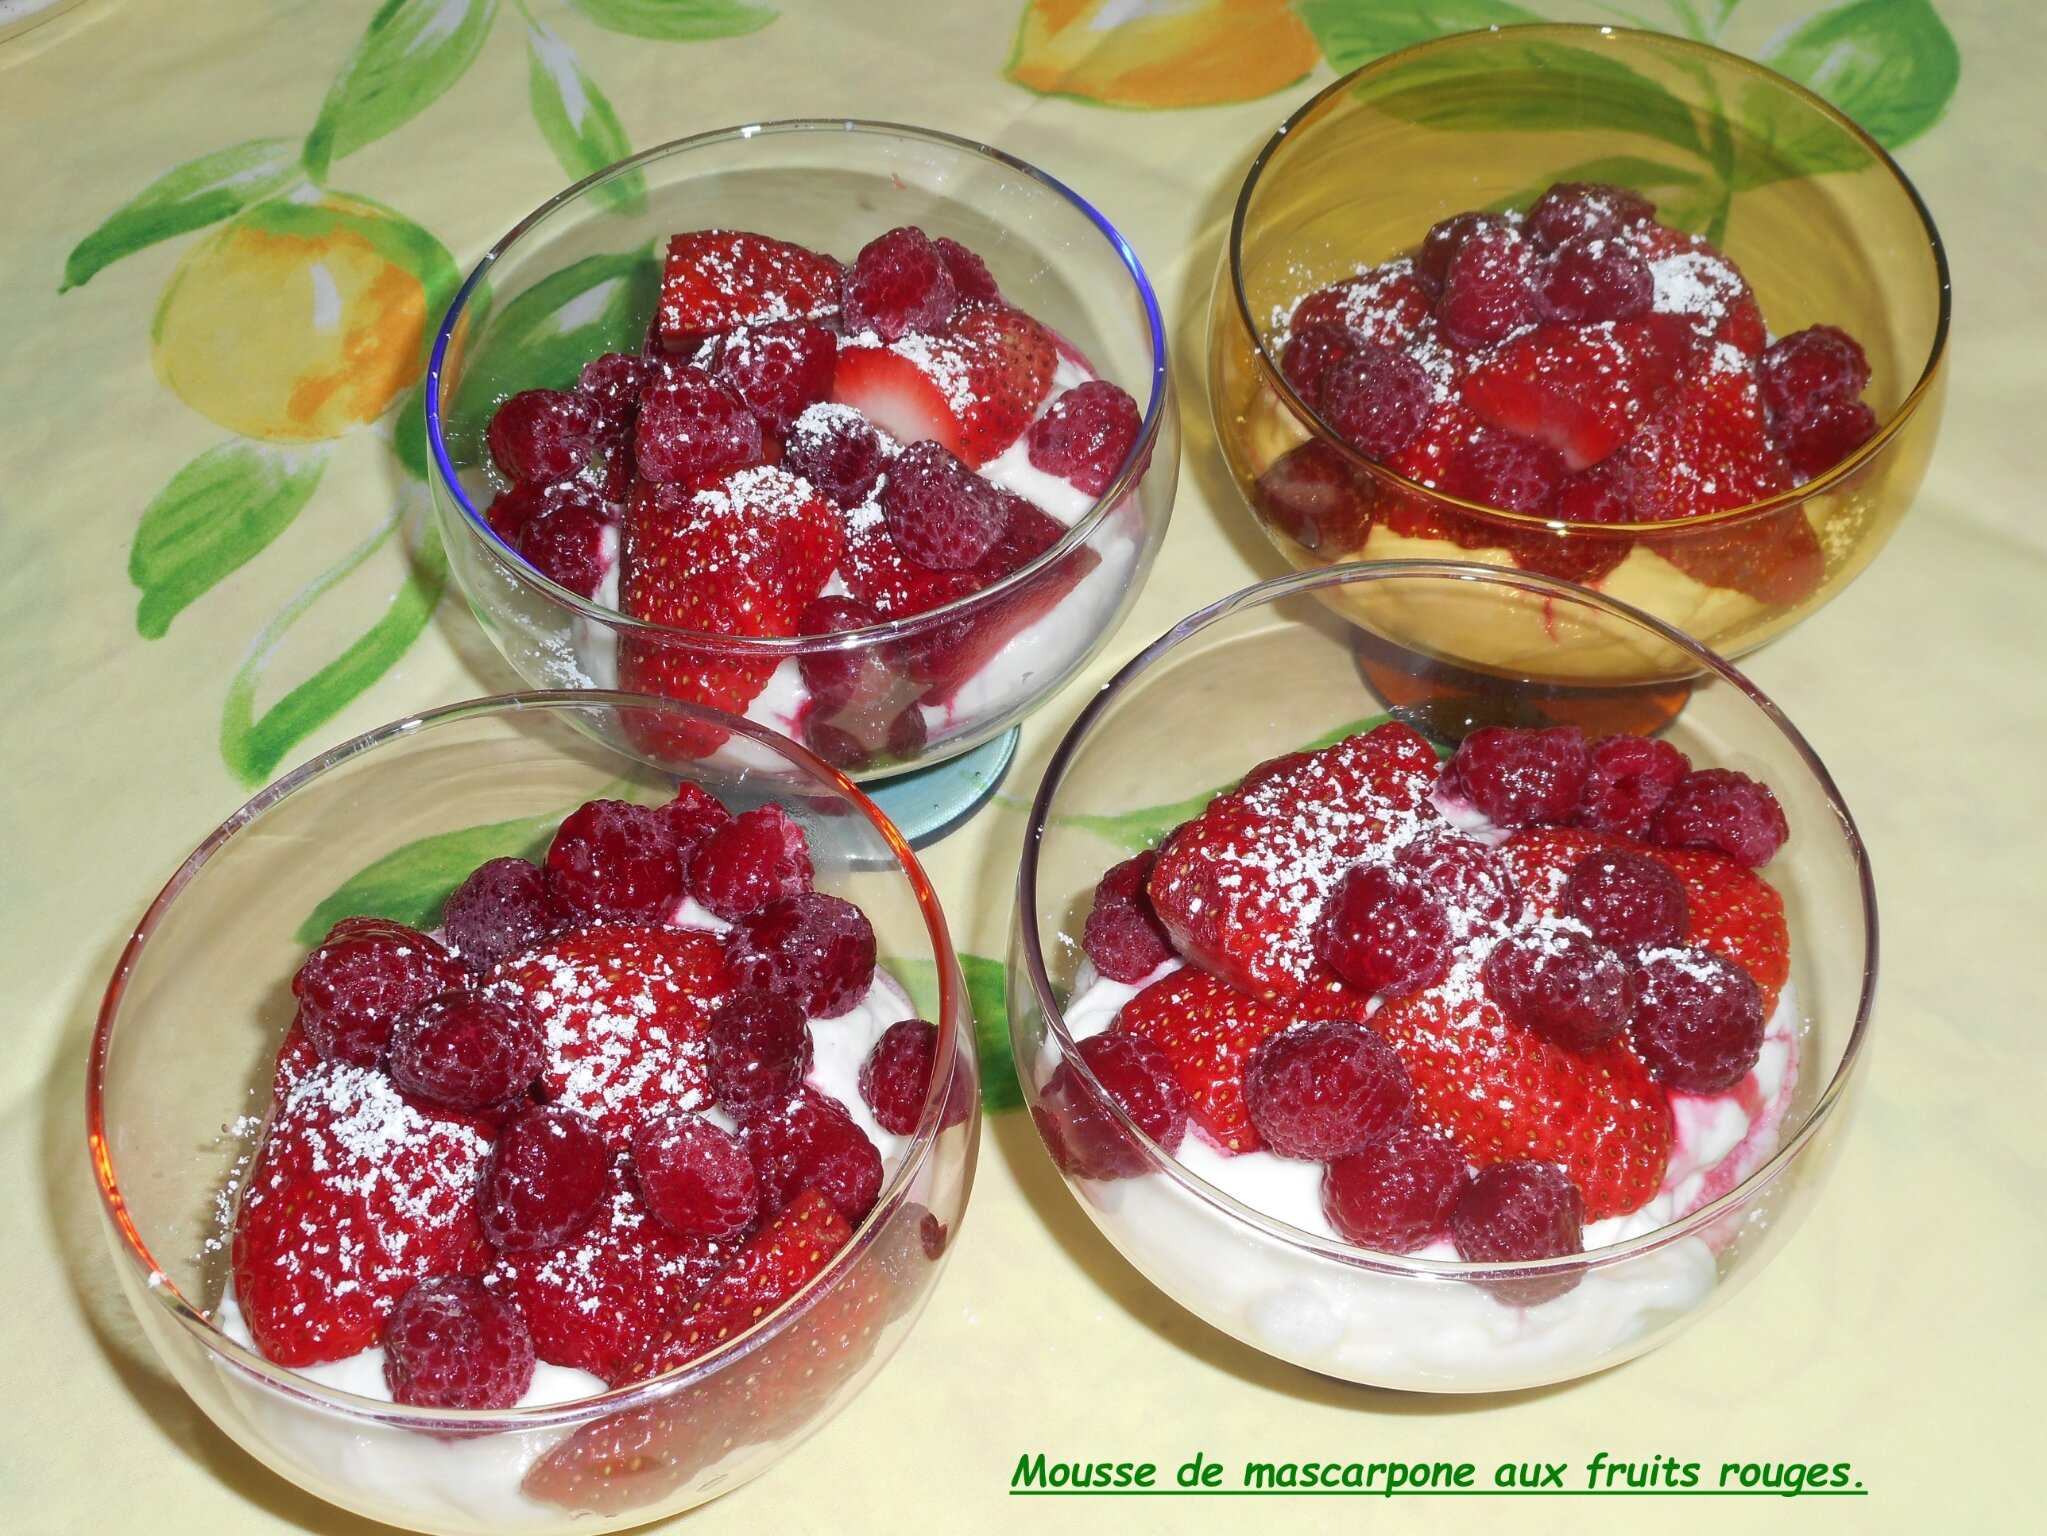 mousse de mascarpone aux fruits rouges mes recettes et photos de g teaux. Black Bedroom Furniture Sets. Home Design Ideas